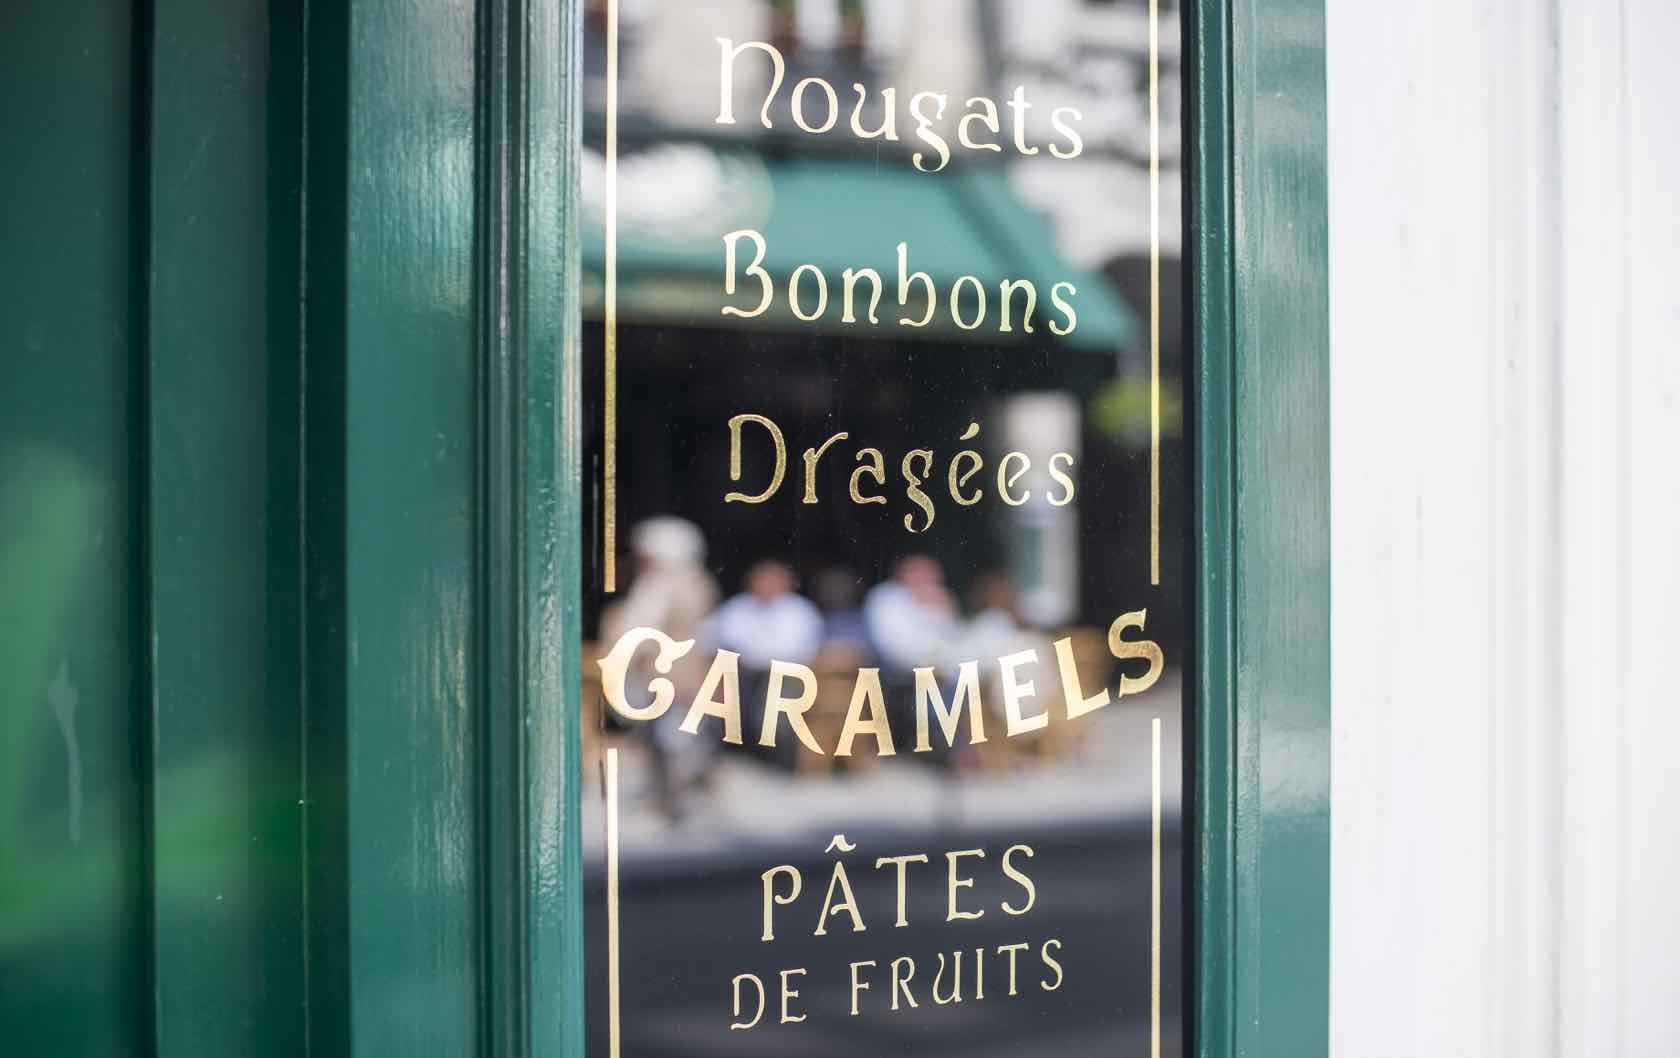 8 Great Chocolate Shops in Paris